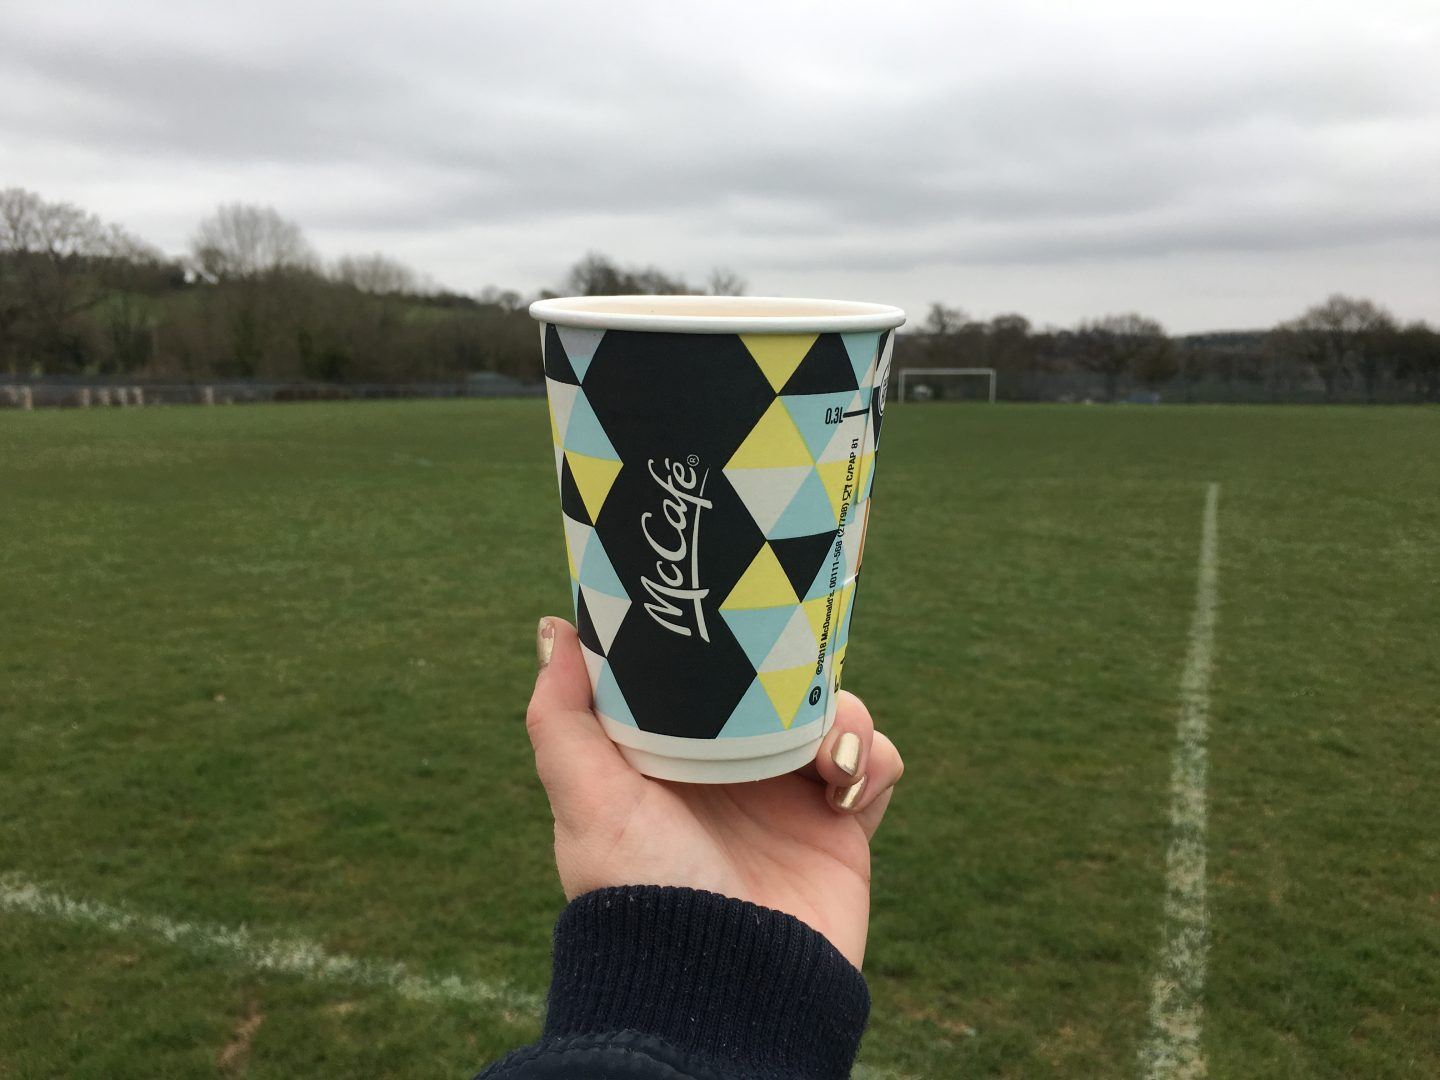 A McDonald's 'McCafe' plastic cup held up in front of a football pitch